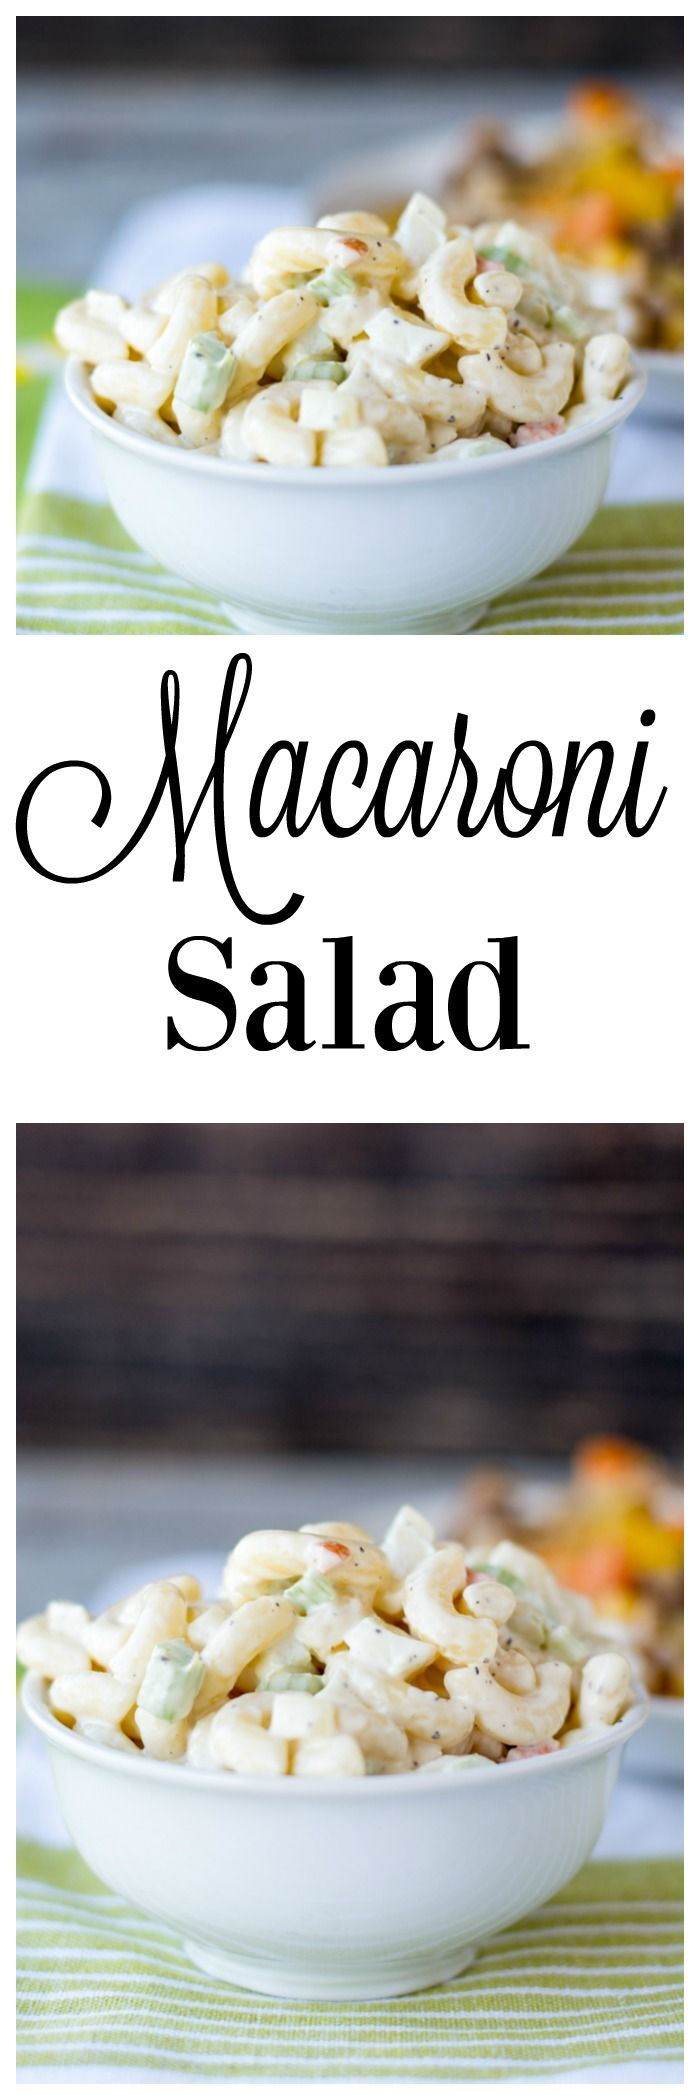 Macaroni Salad- the perfect side dish for summer- goes great with barbecue!